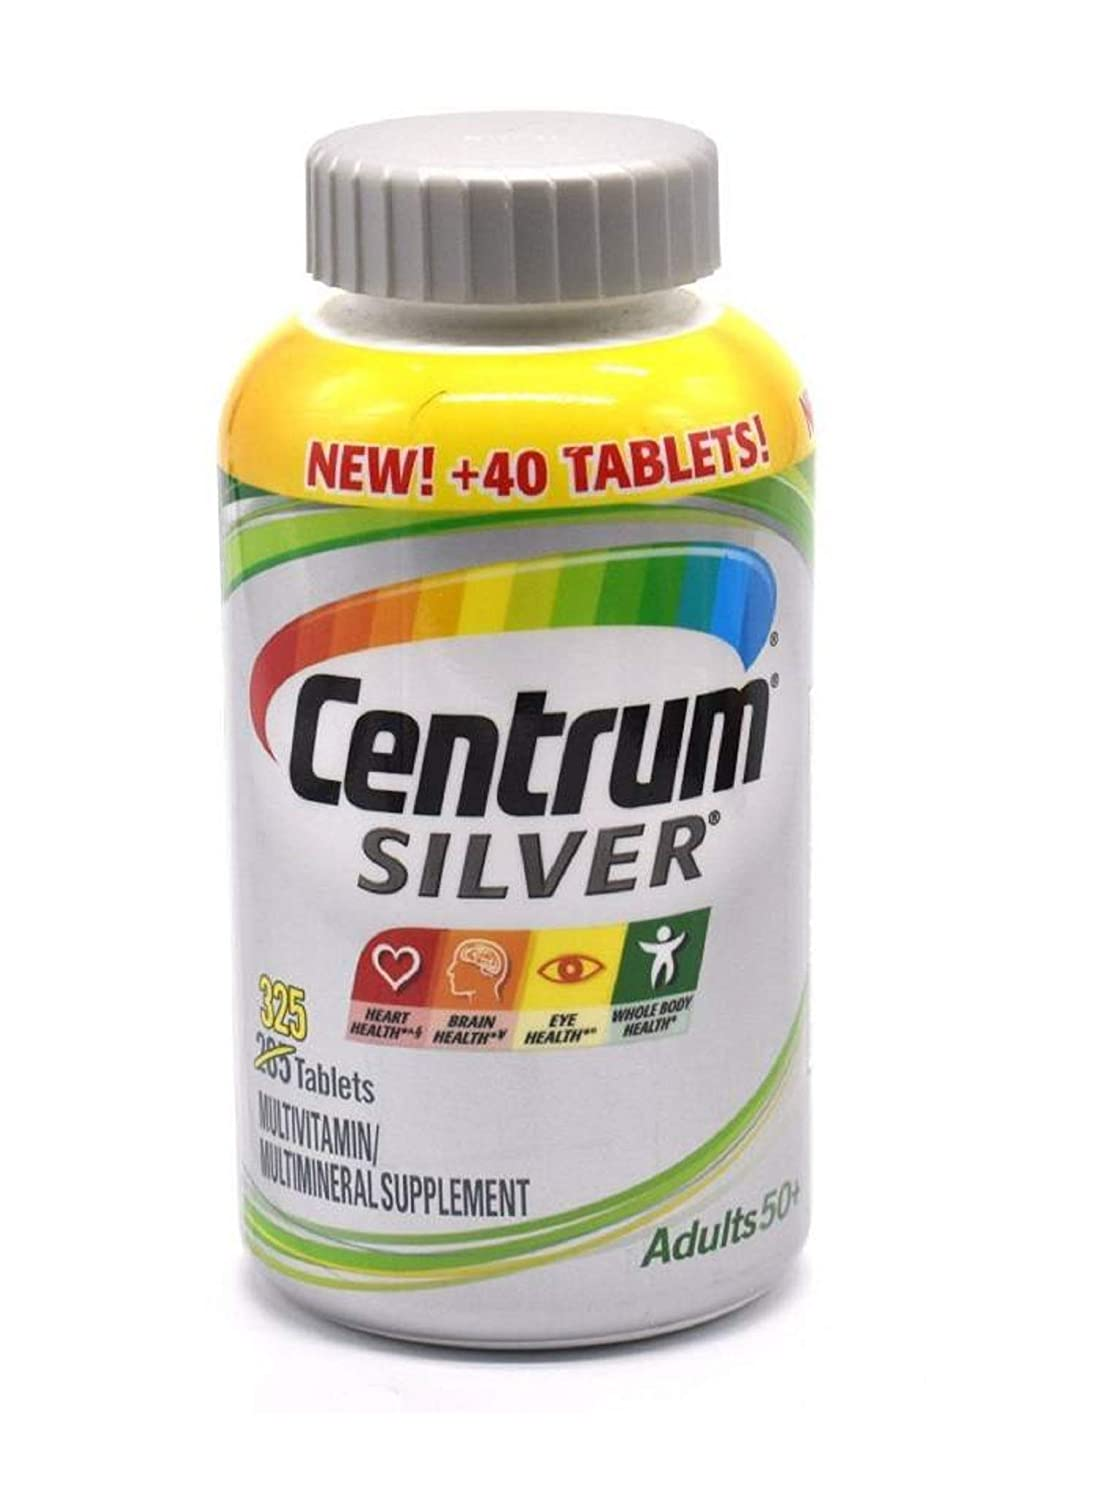 Centrum Silver Adults 50 325 Tablets